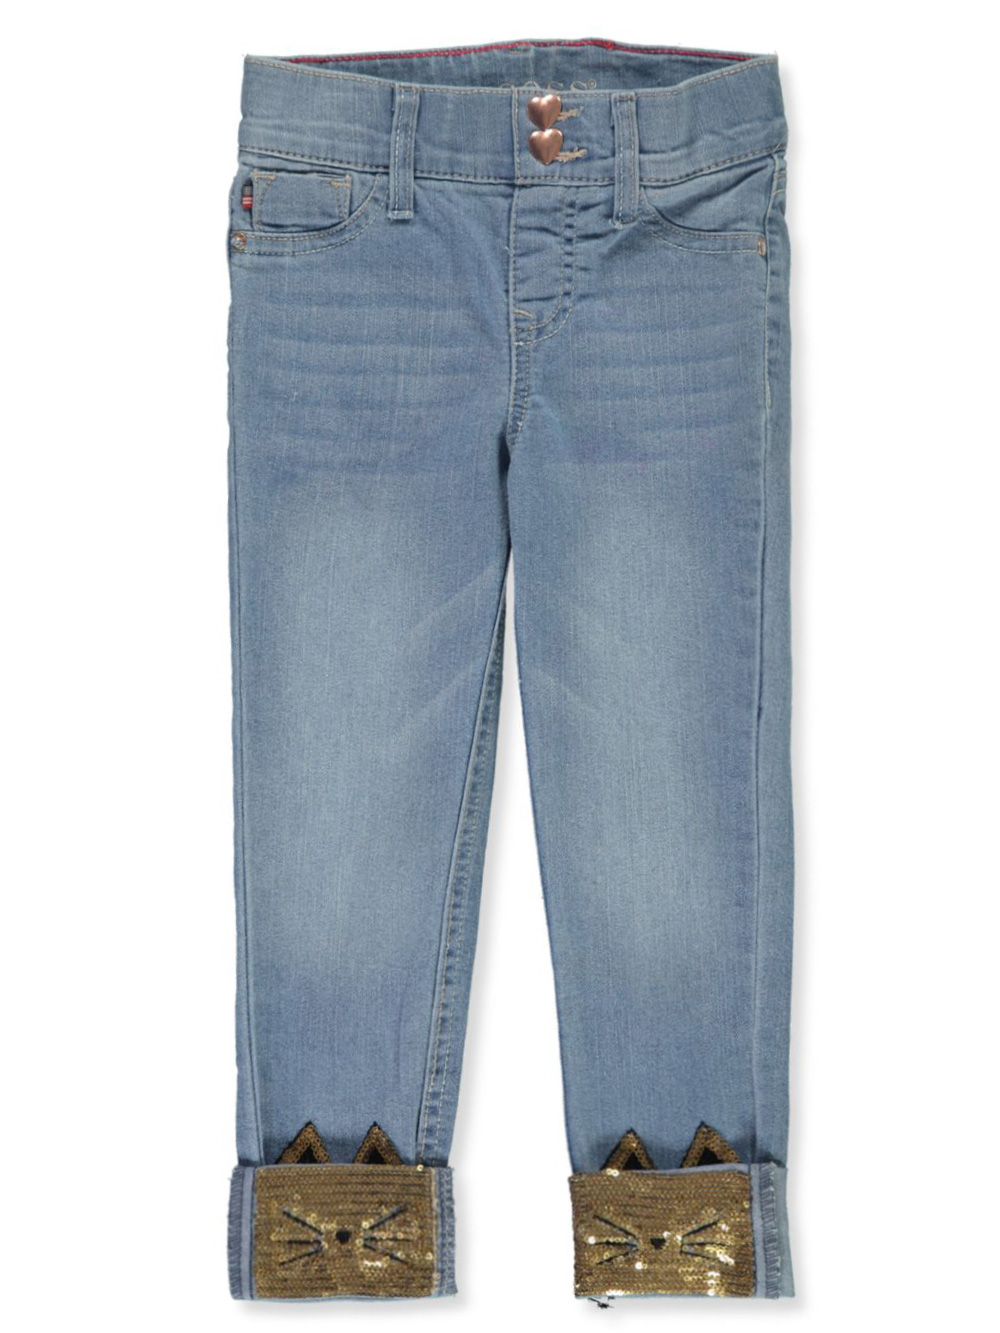 Size 4t Jeans for Girls